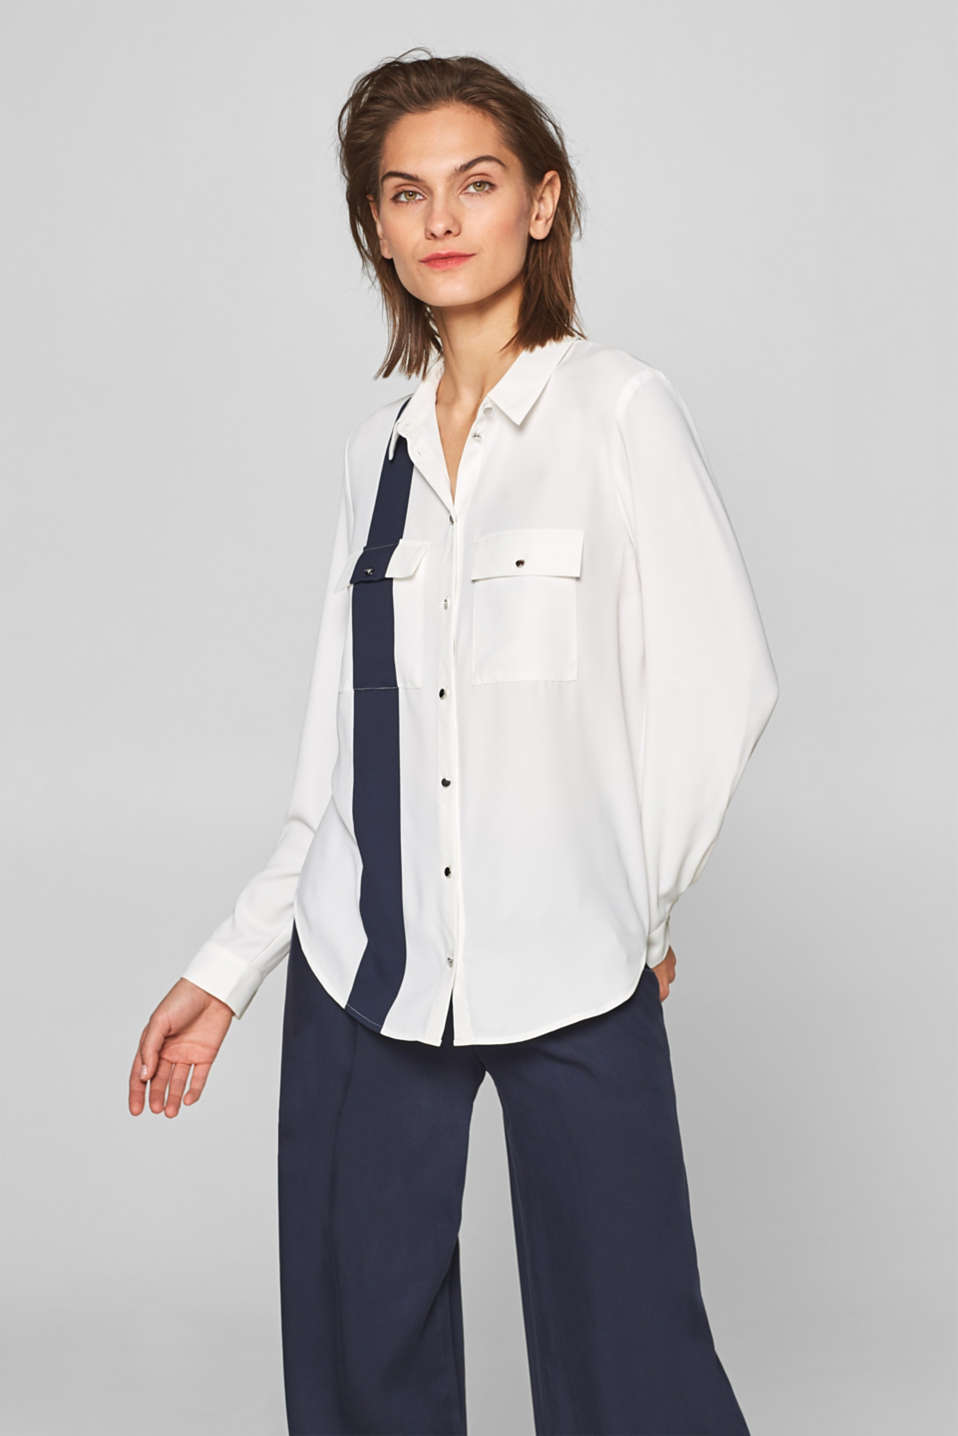 Esprit - Casual shirt blouse with contrast stripes